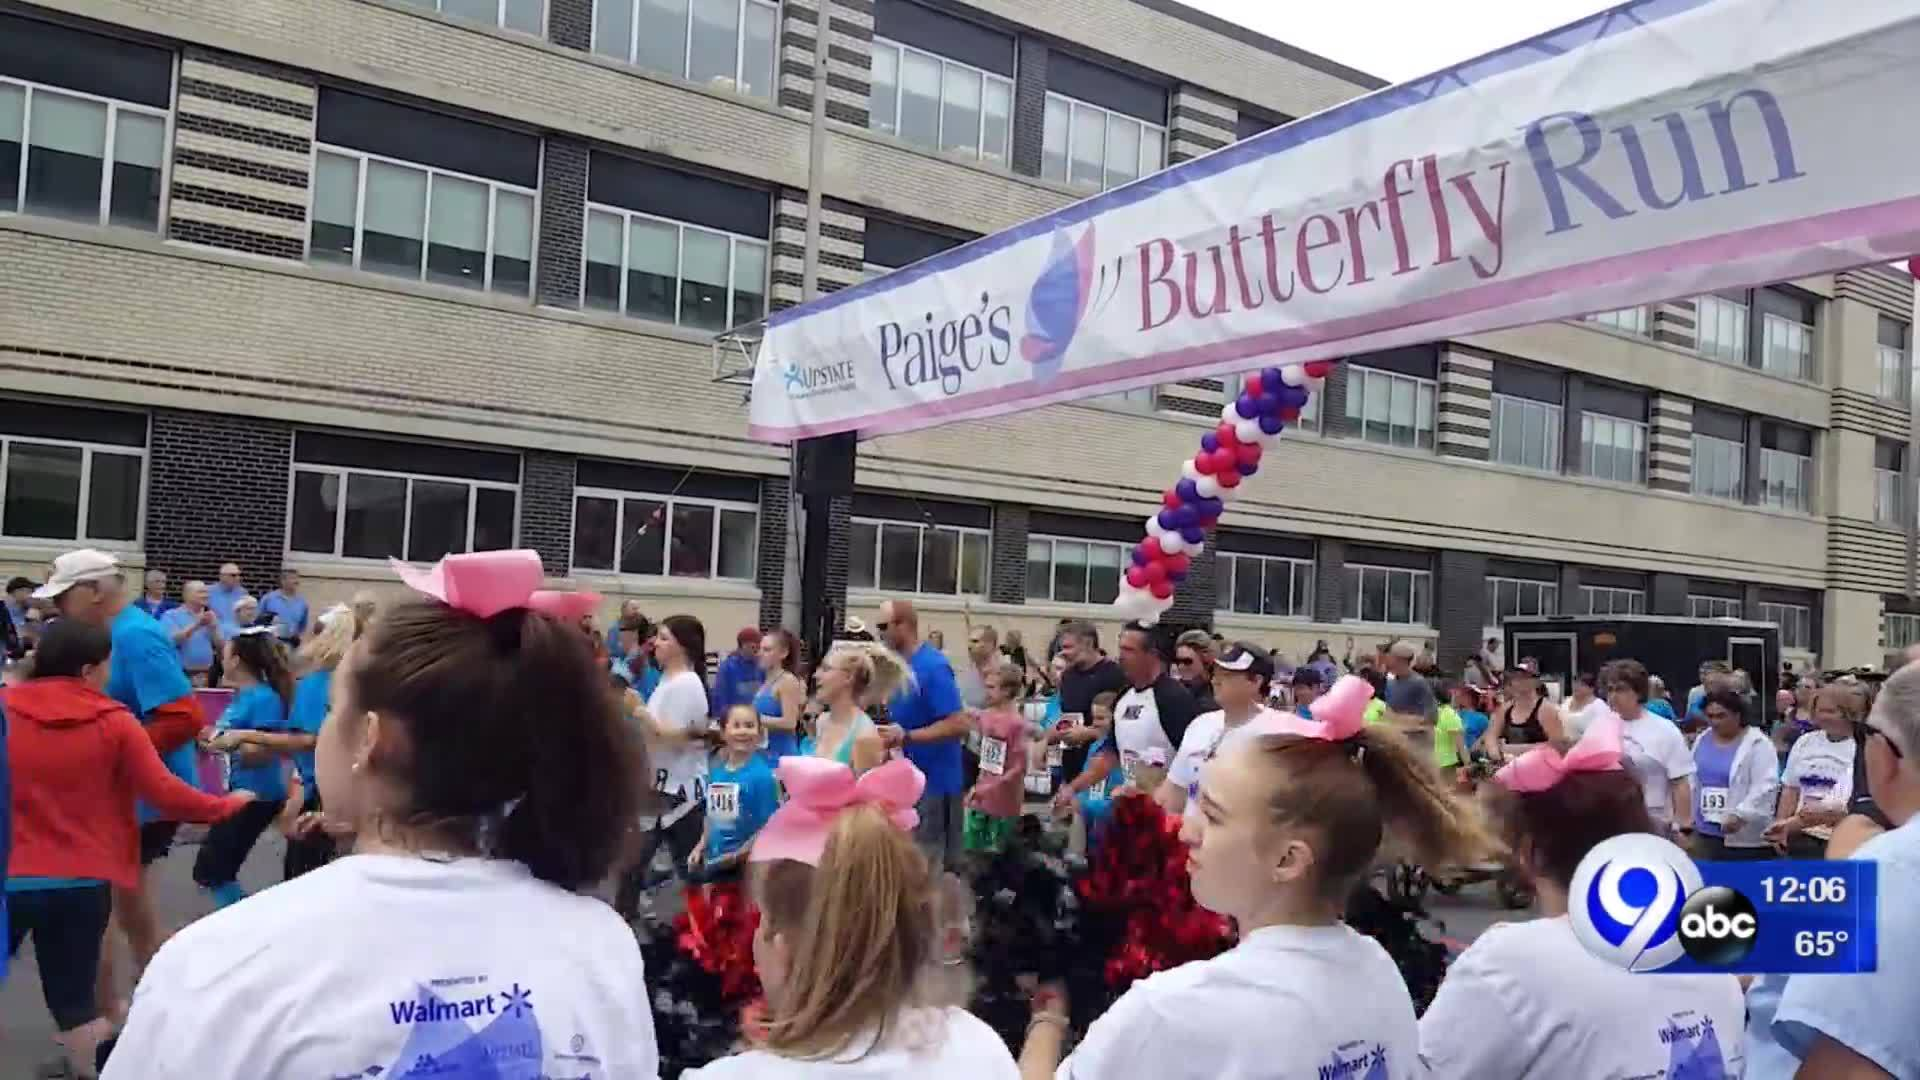 Preparing_for_Paige___s_Butterfly_Run_8_20190606161716